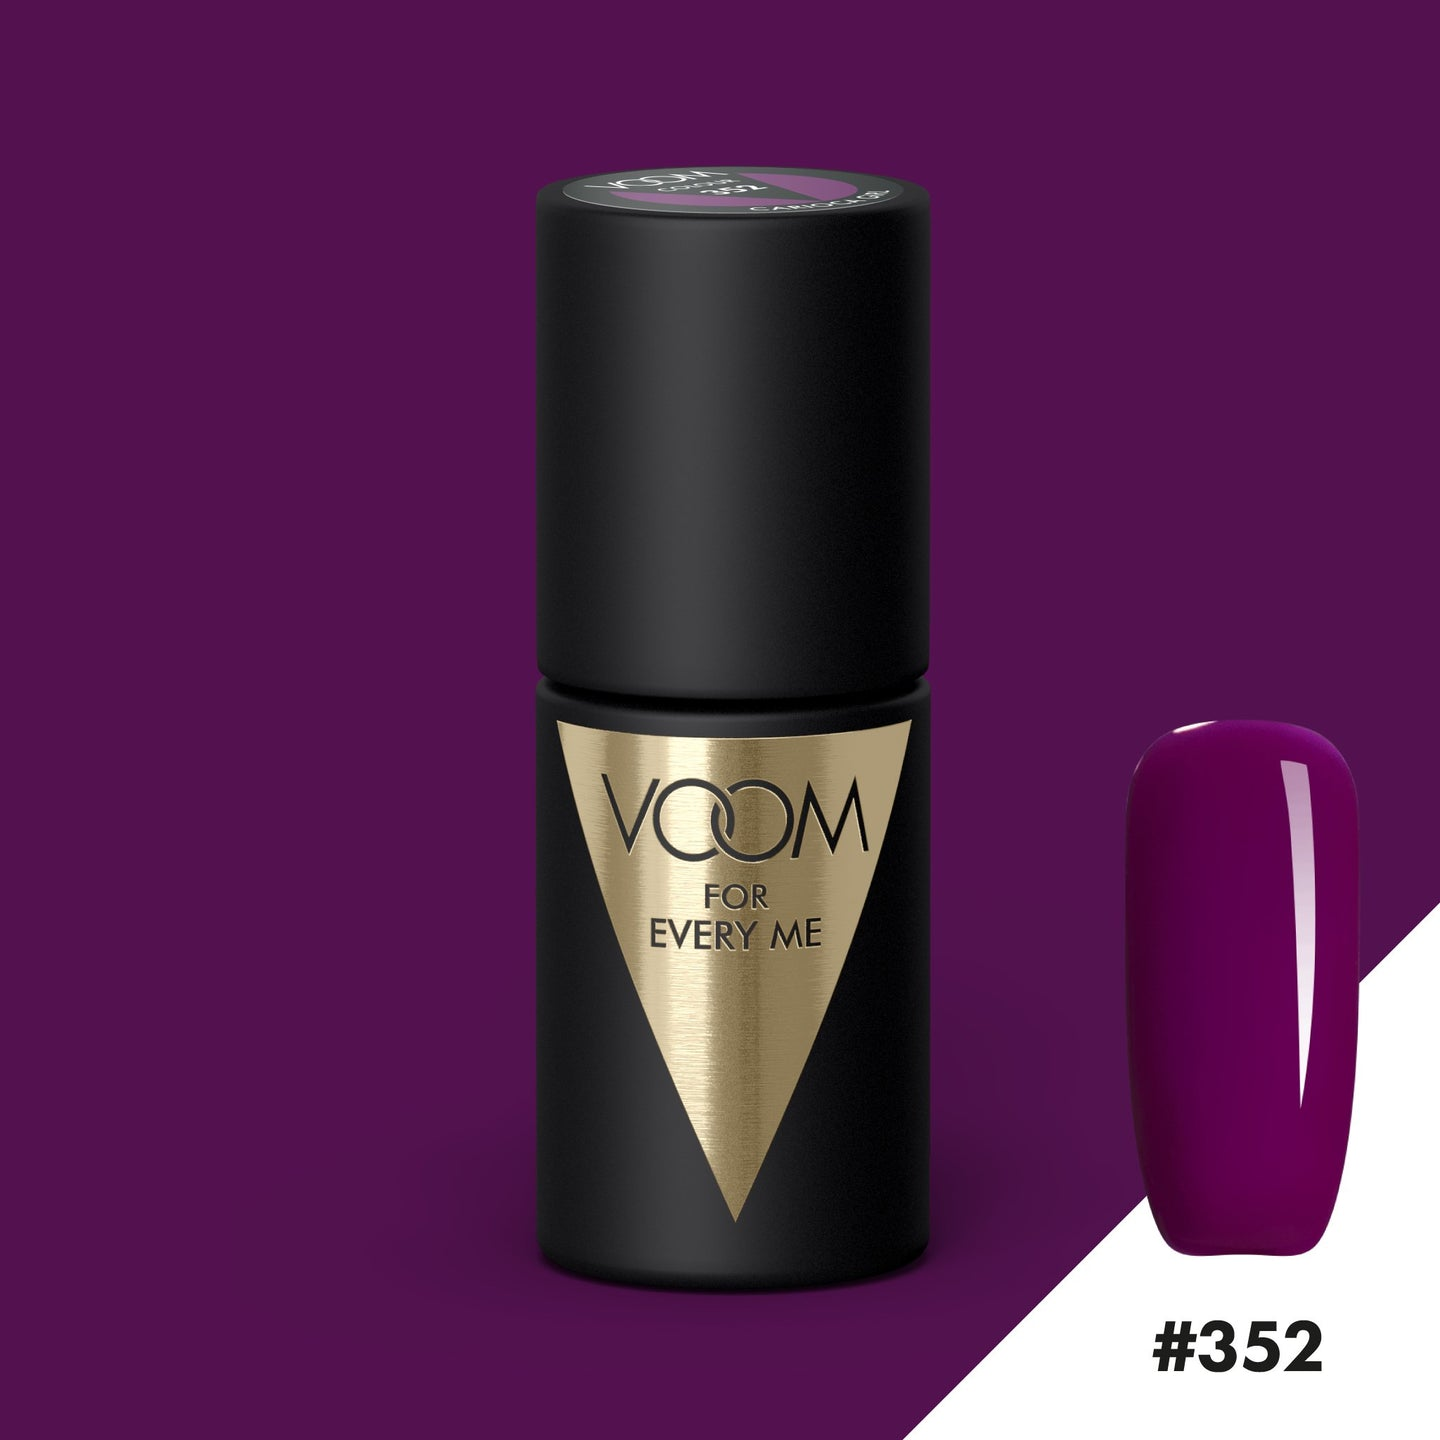 VOOM Soak Off Gel Polish #352 - Carioca Girl (.17 fl. oz. | 5 ml)